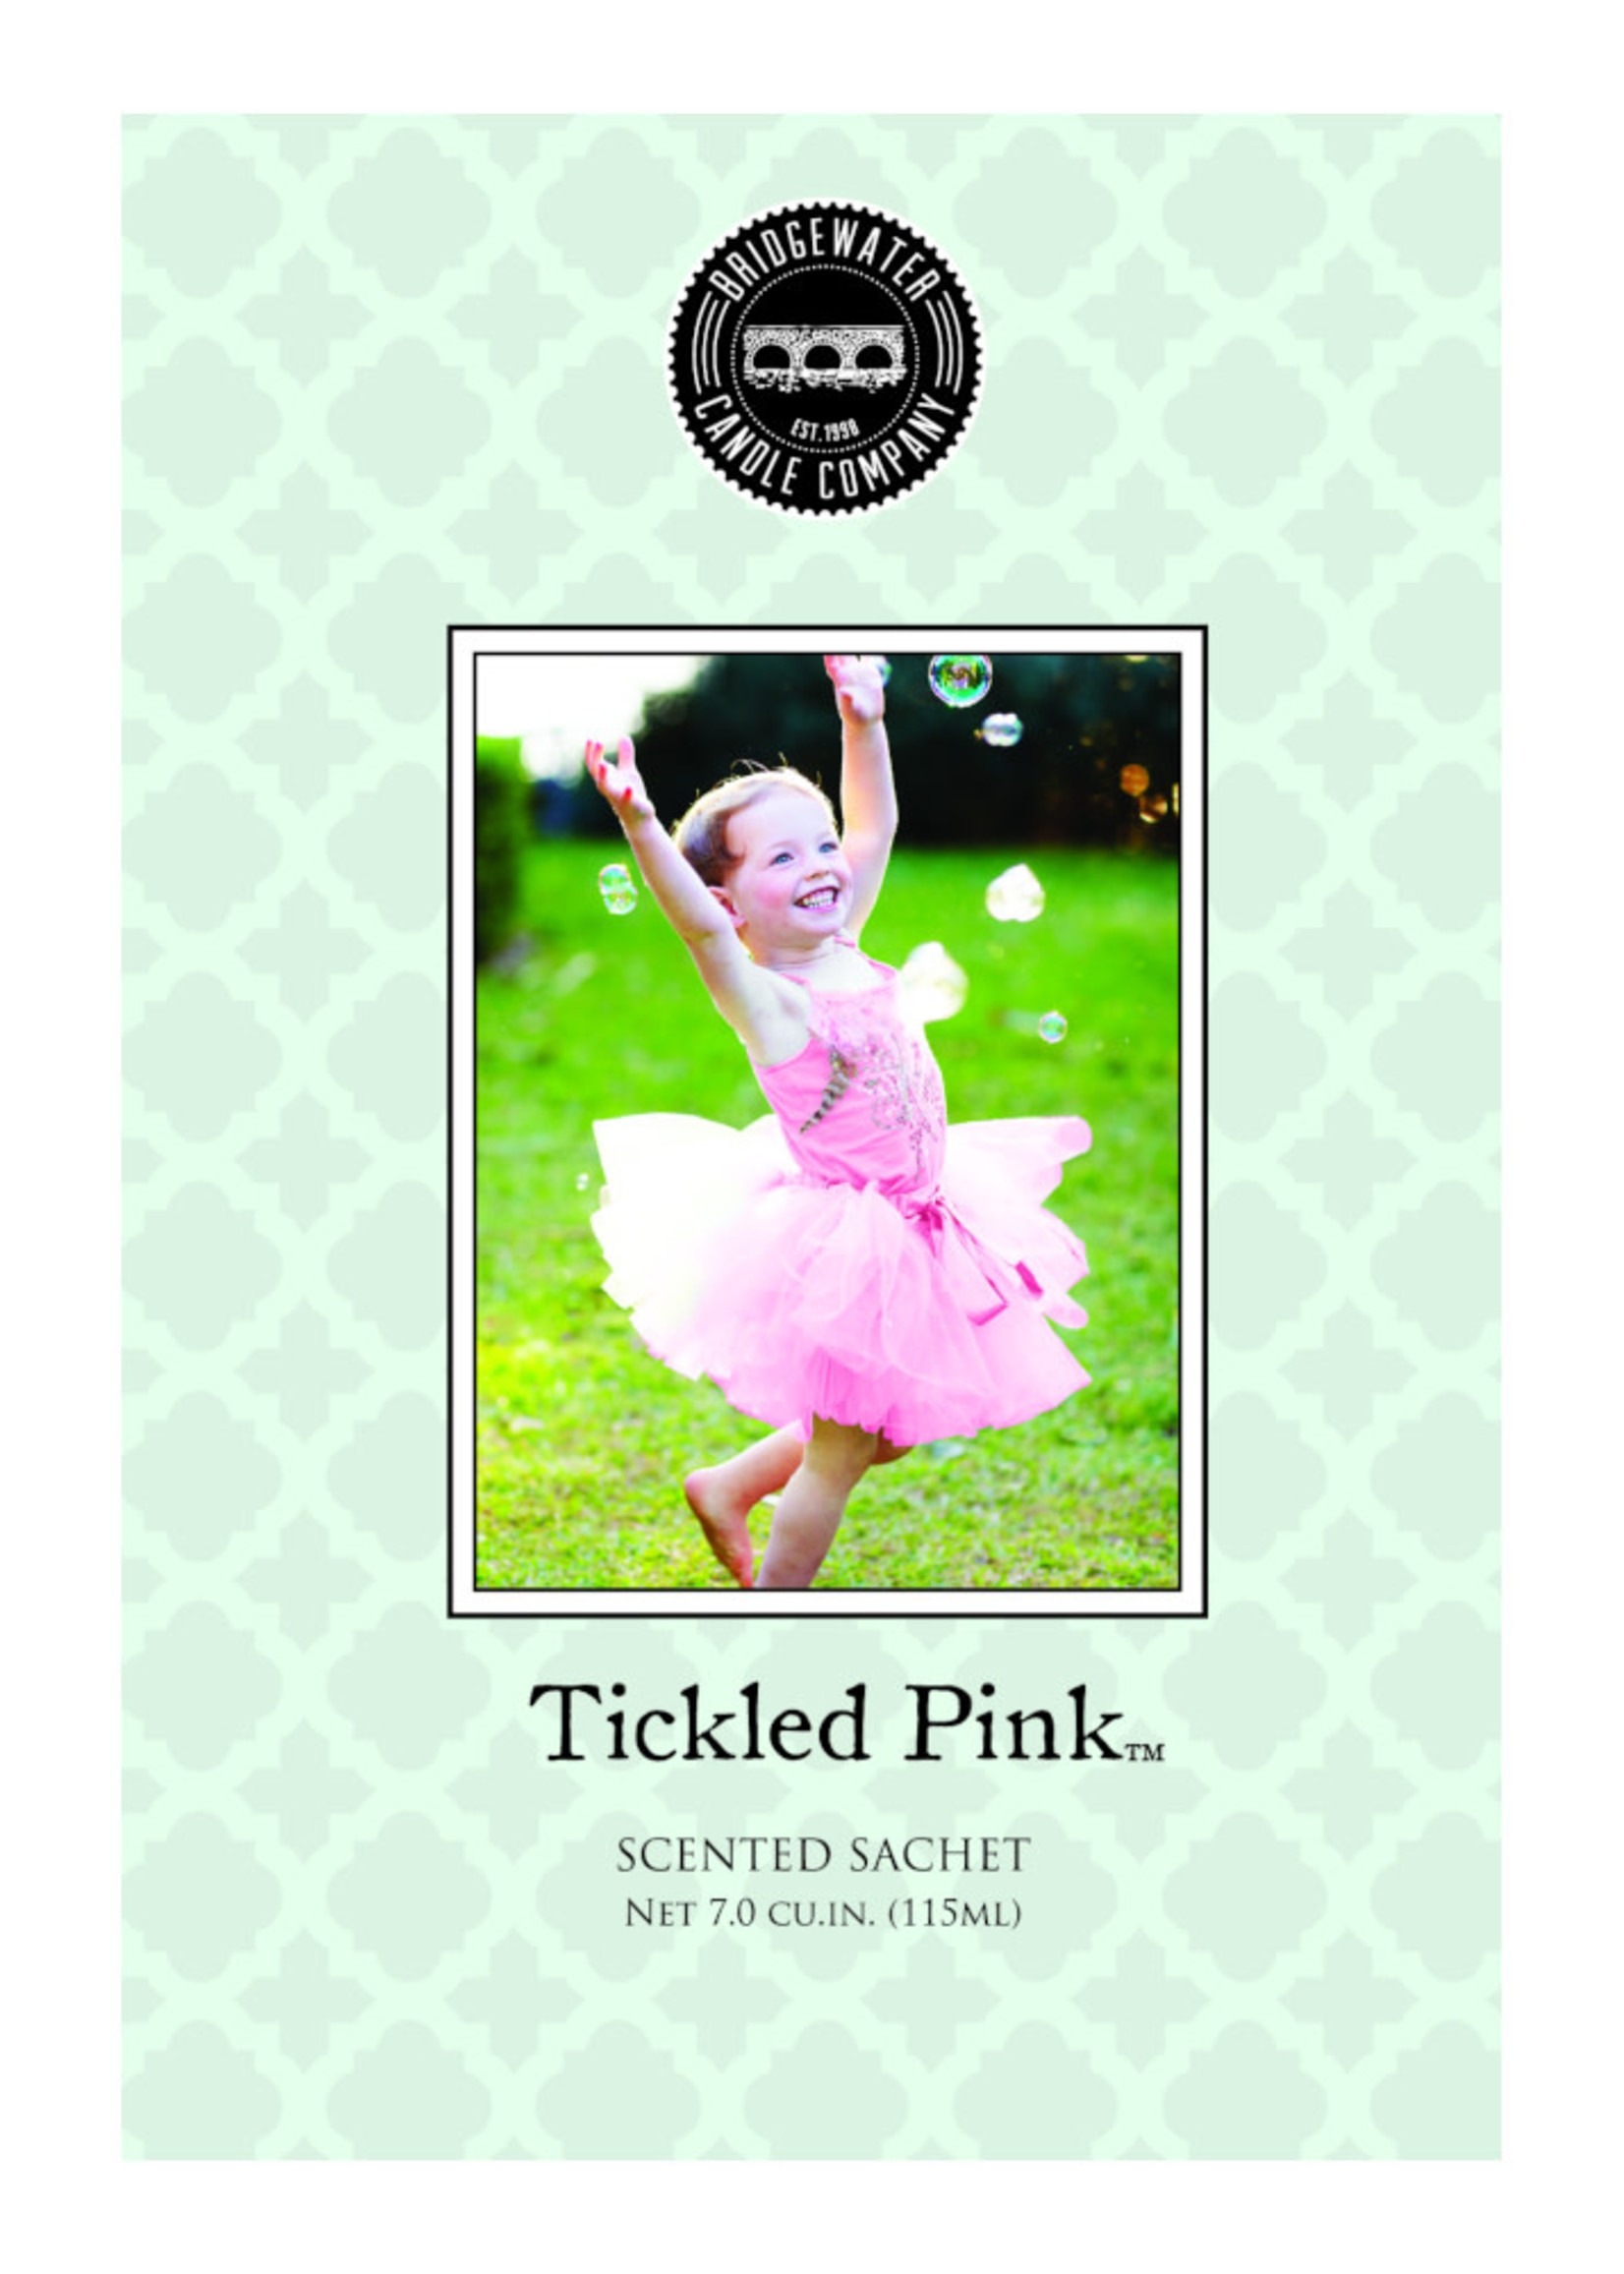 Scented Sachet Tickled Pink